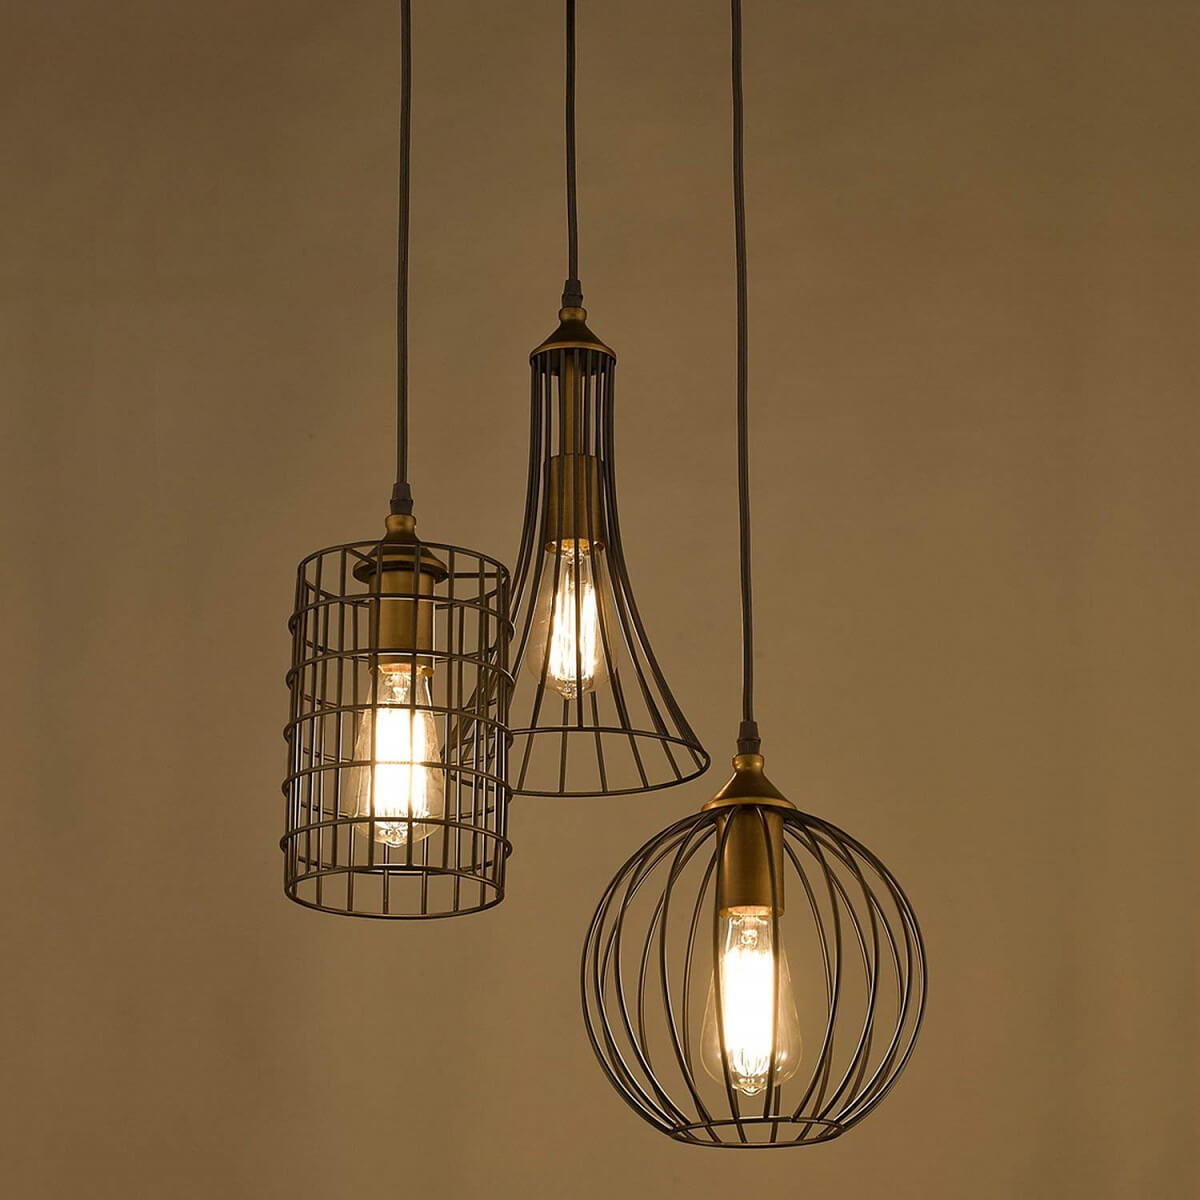 Pendant Lighting Pendant Lighting 30 Rustic Modern And Farmhouse Options